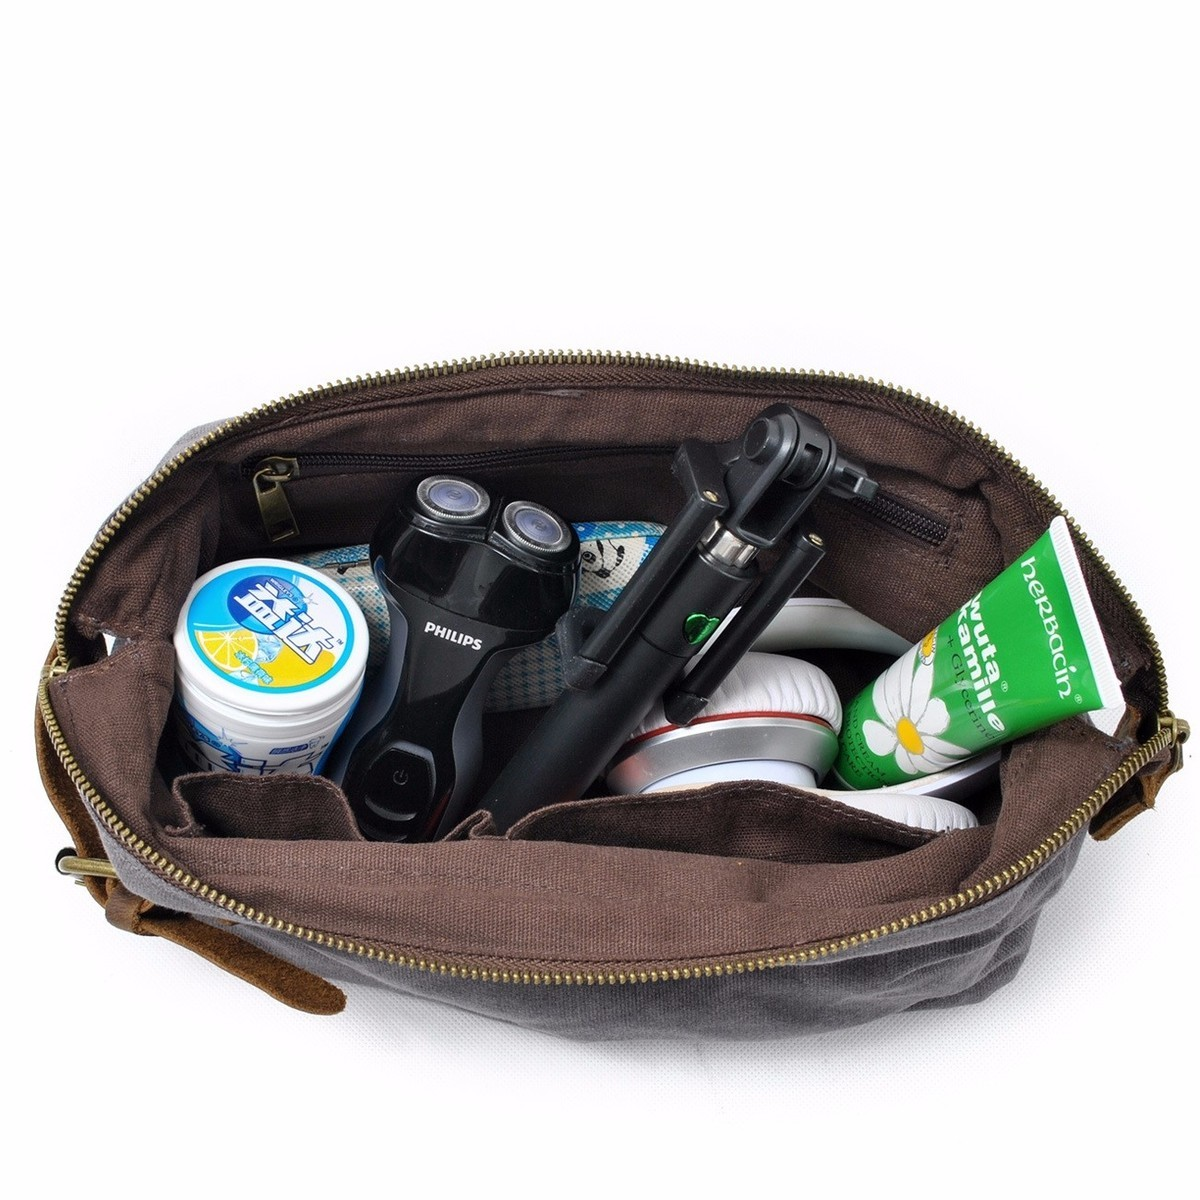 233a0d700a DAYGOS Canvas Travel Toiletry Organizer Shaving Dopp Kit Leather Travel  Cosmetic Bag Makeup Men Handbag Casual Zipper Wash Cases-in Cosmetic Bags    Cases ...